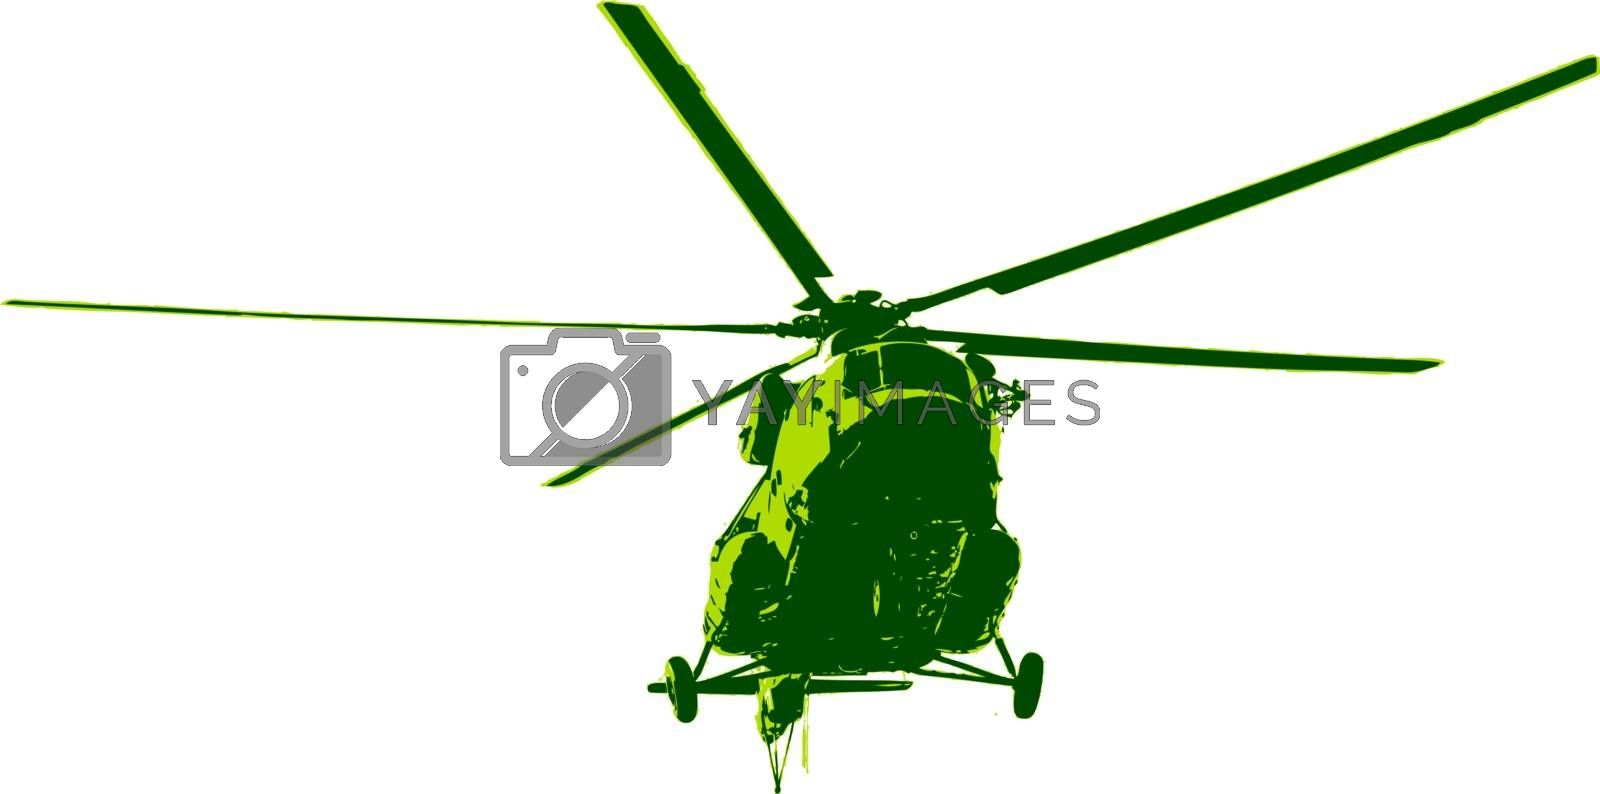 Russian army Mi-8 helicopter. Vector illustration.